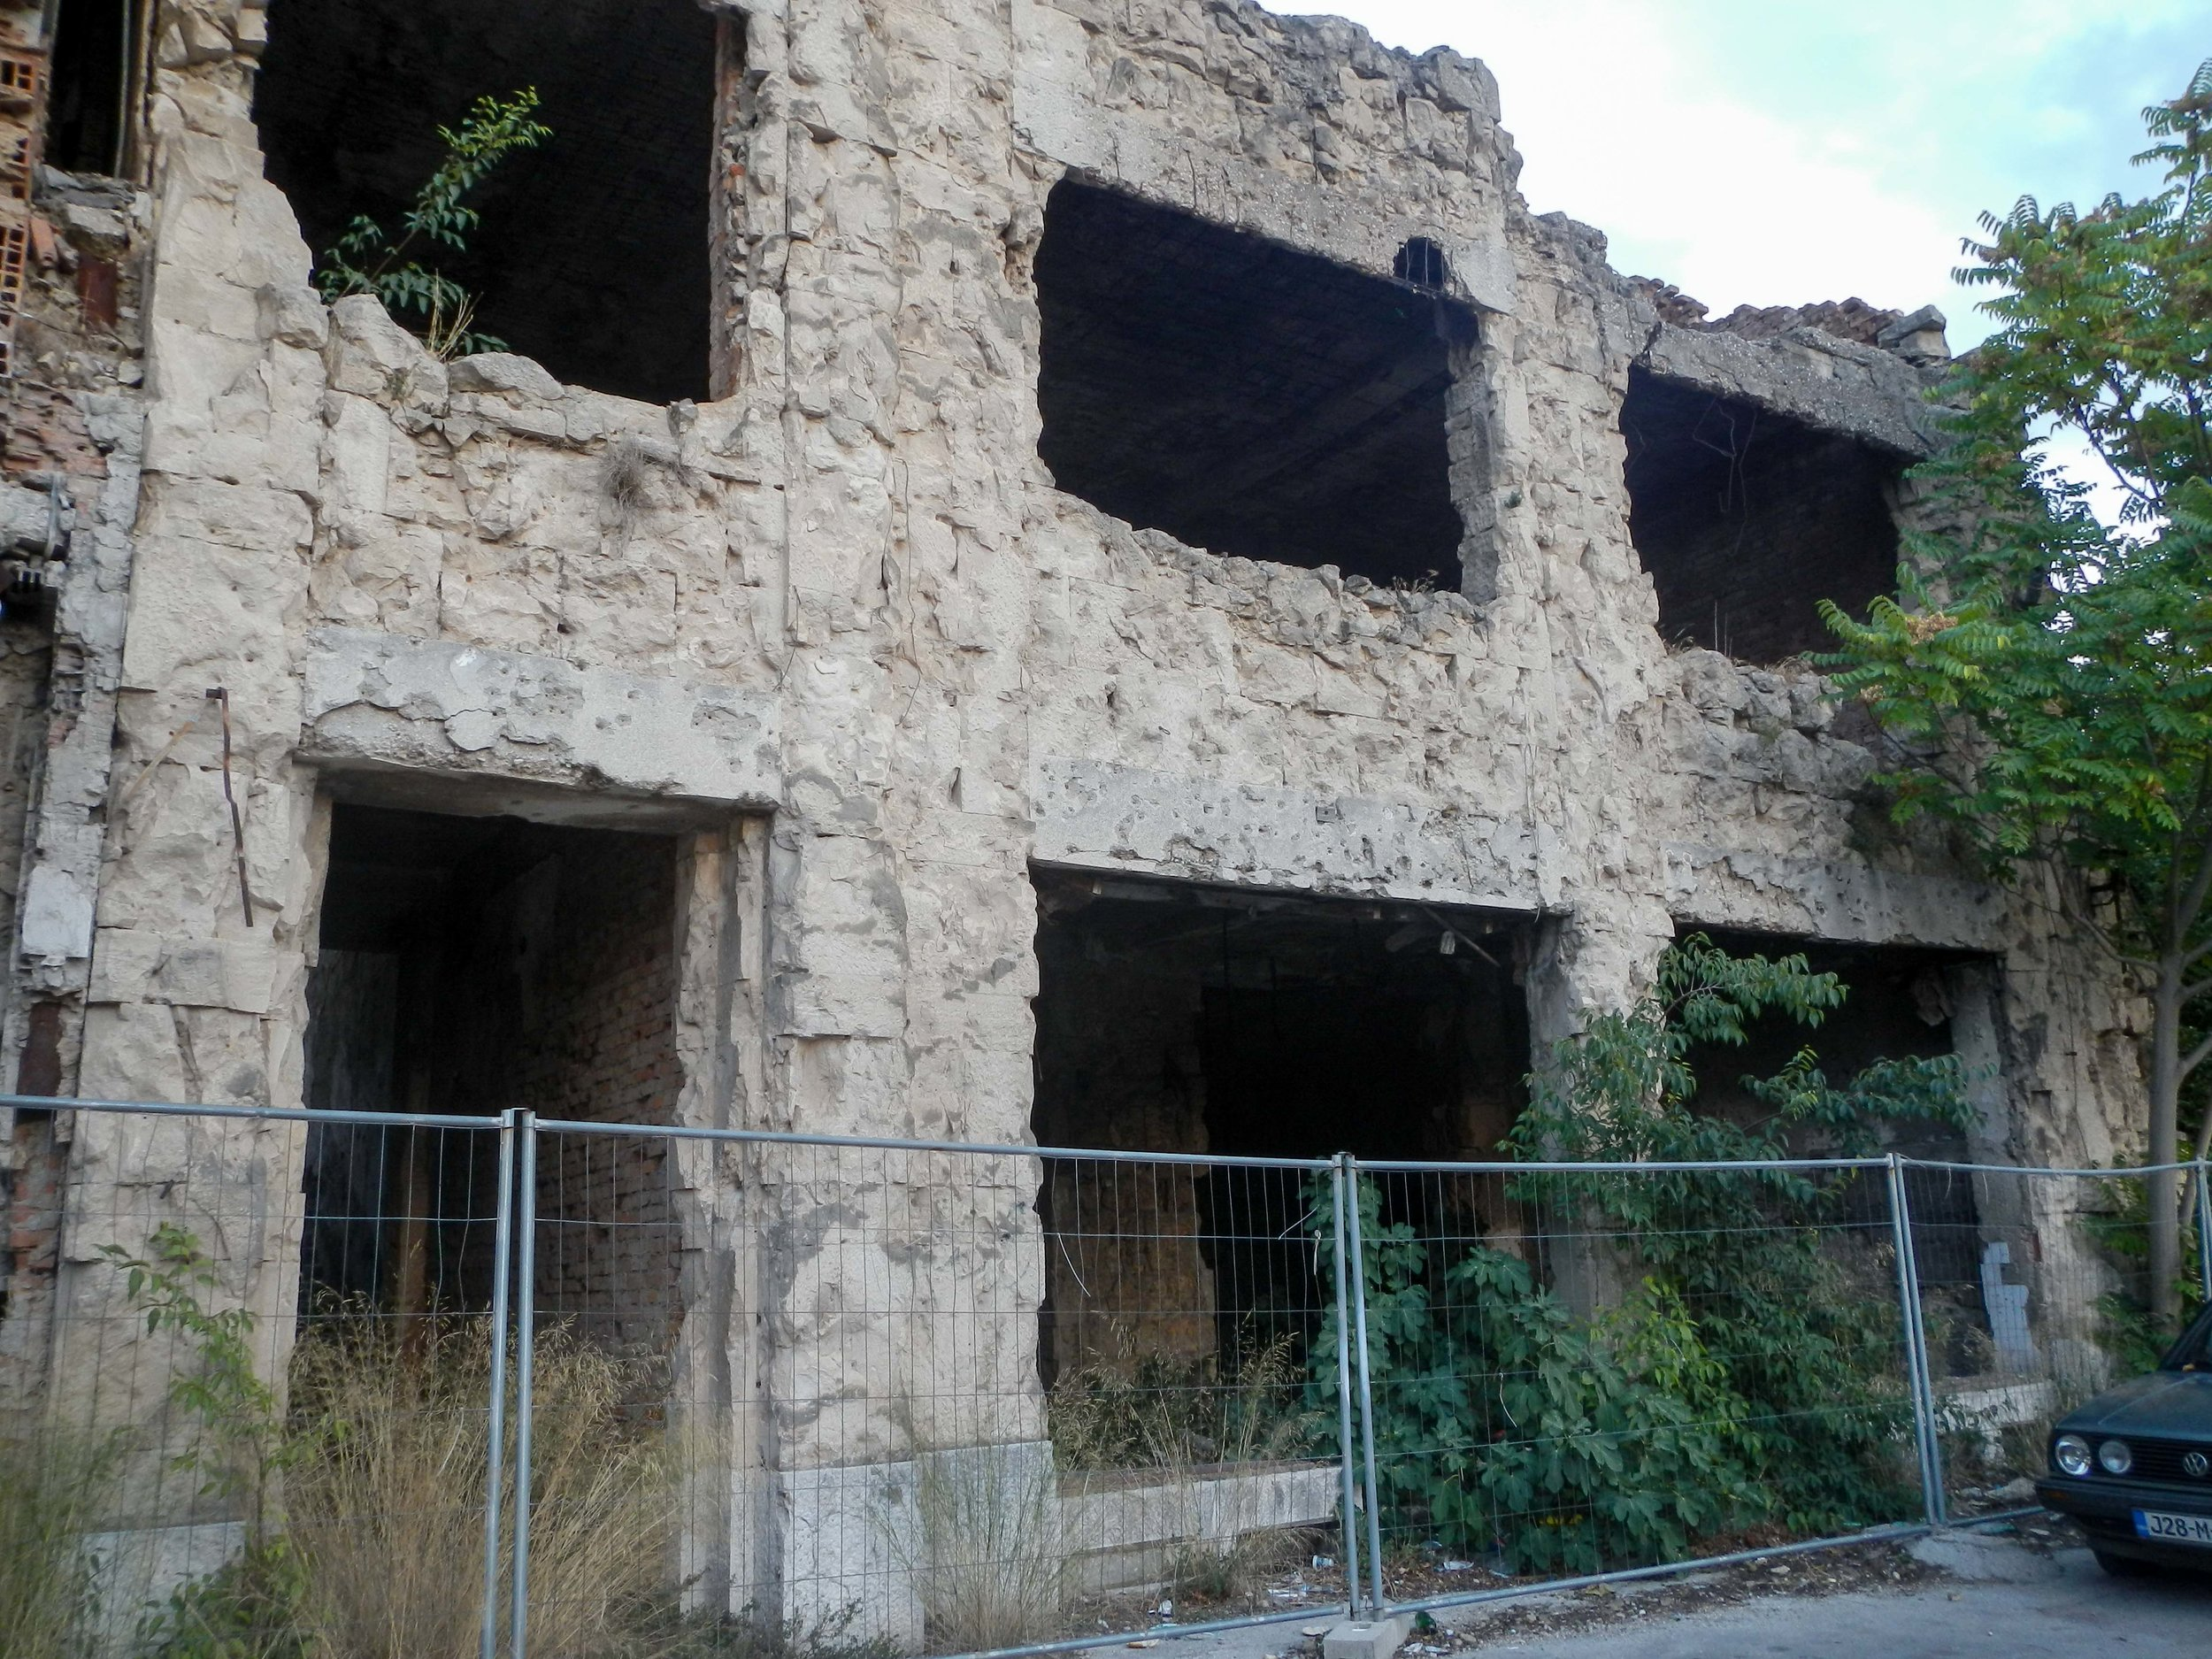 Damaged building, Mostar